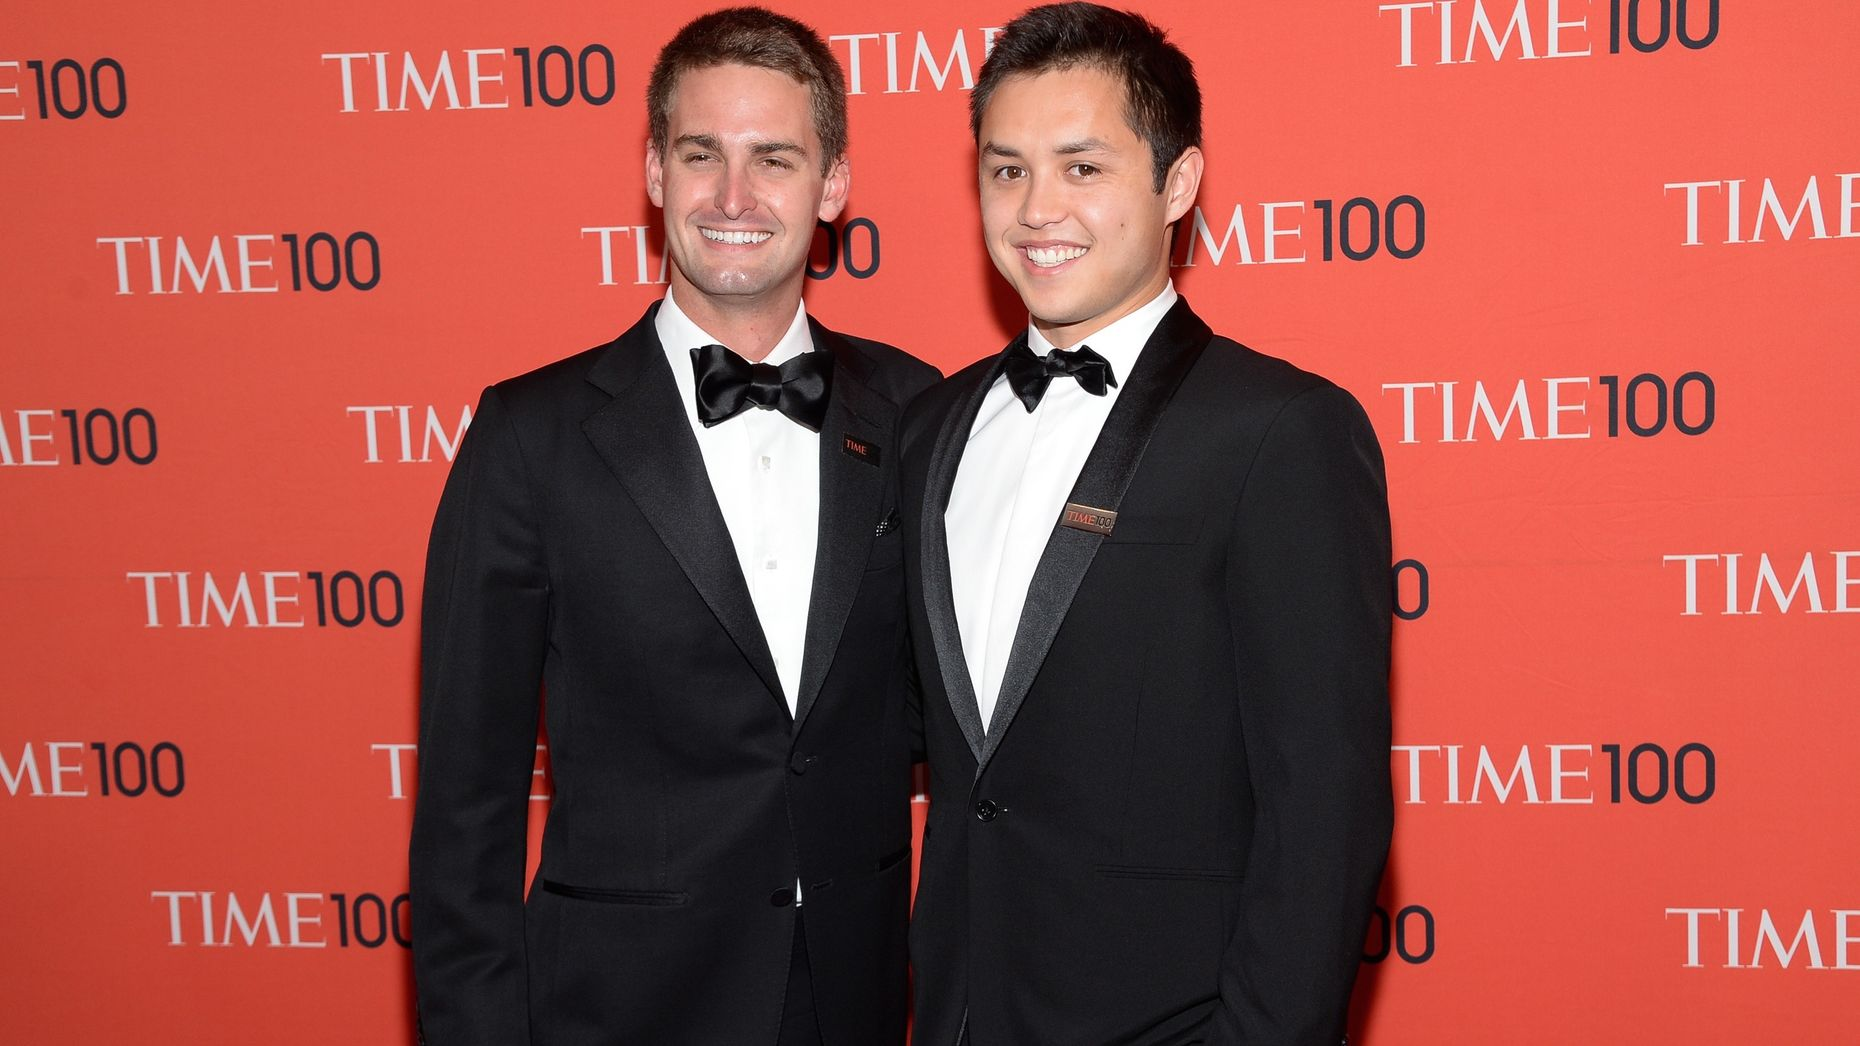 Snapchat co-founders Evan Spiegel and Bobby Murphy. Photo by AP.